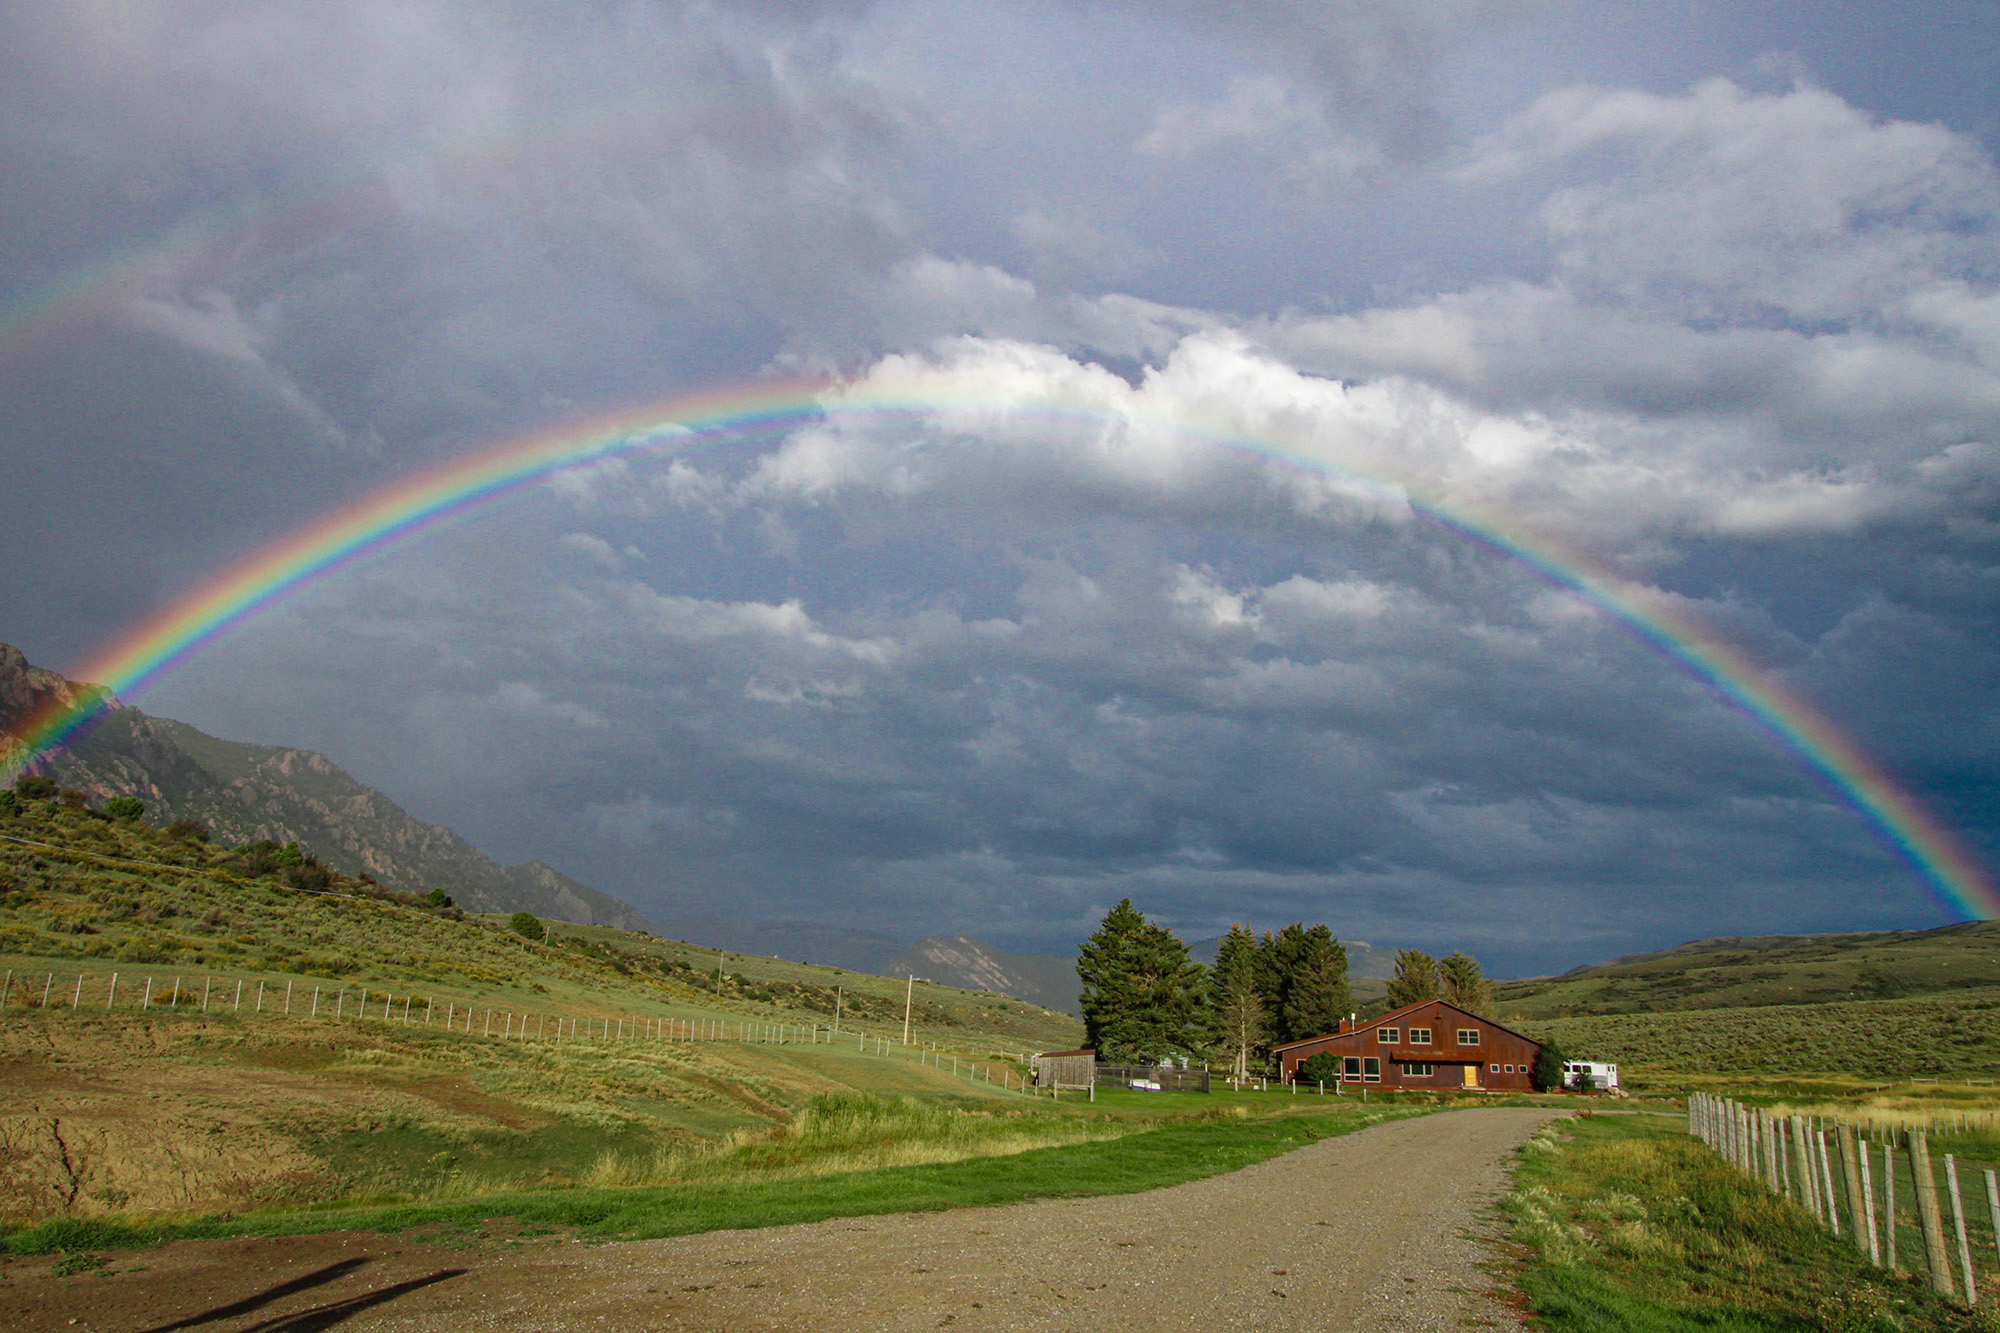 Colorado Ranch for Sale with Rainbow